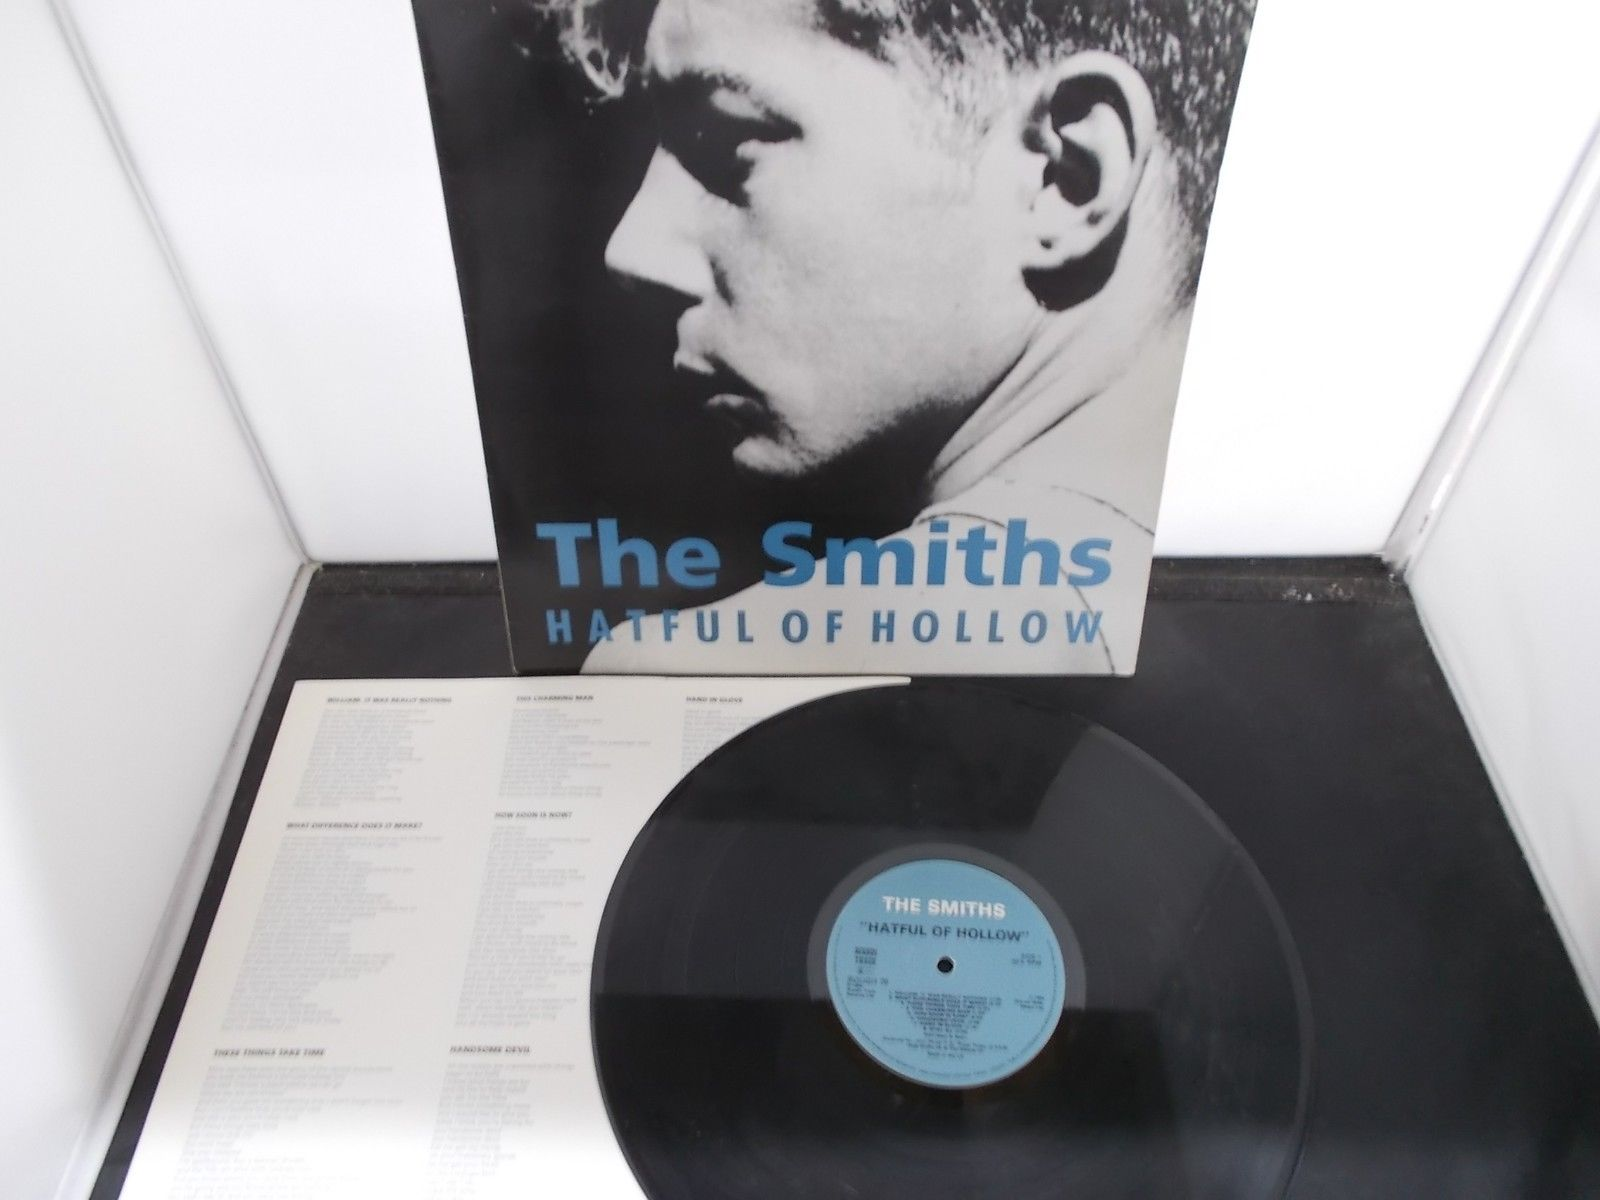 Vinyl Record LP Album THE SMITHS HATEFUL OF HOLLOW (23)